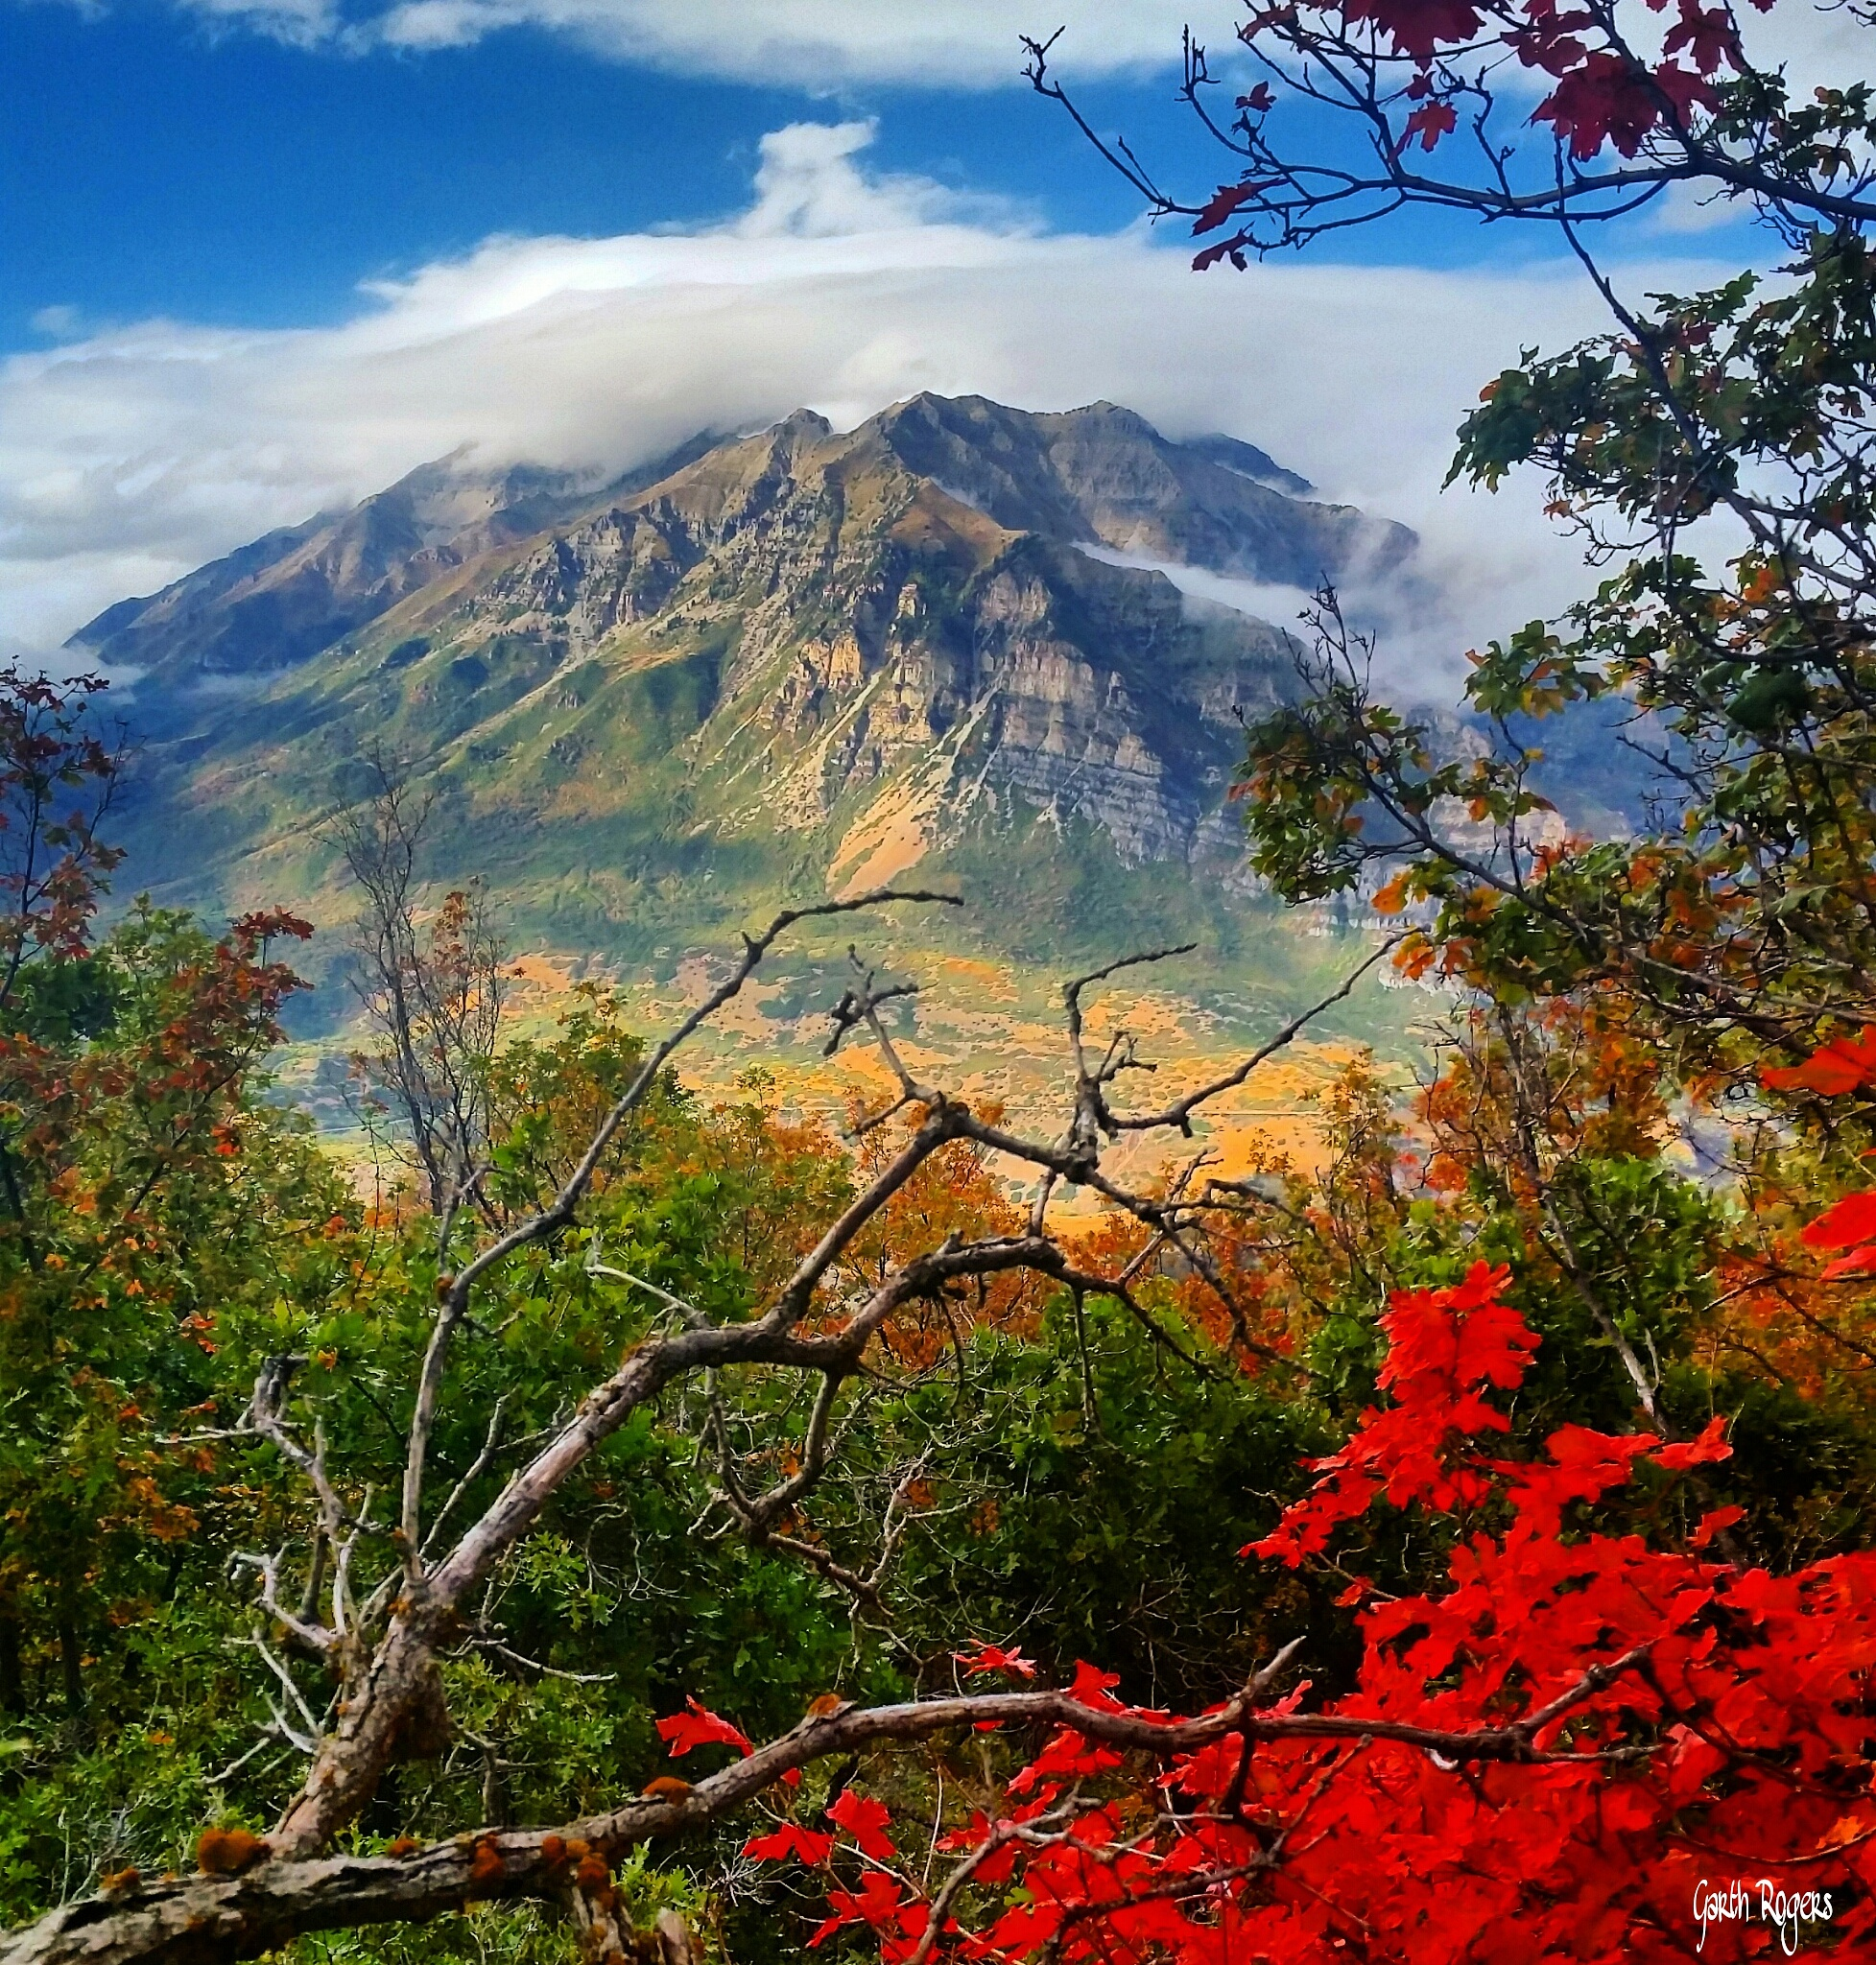 Mount Timpanogos by Garth Rogers